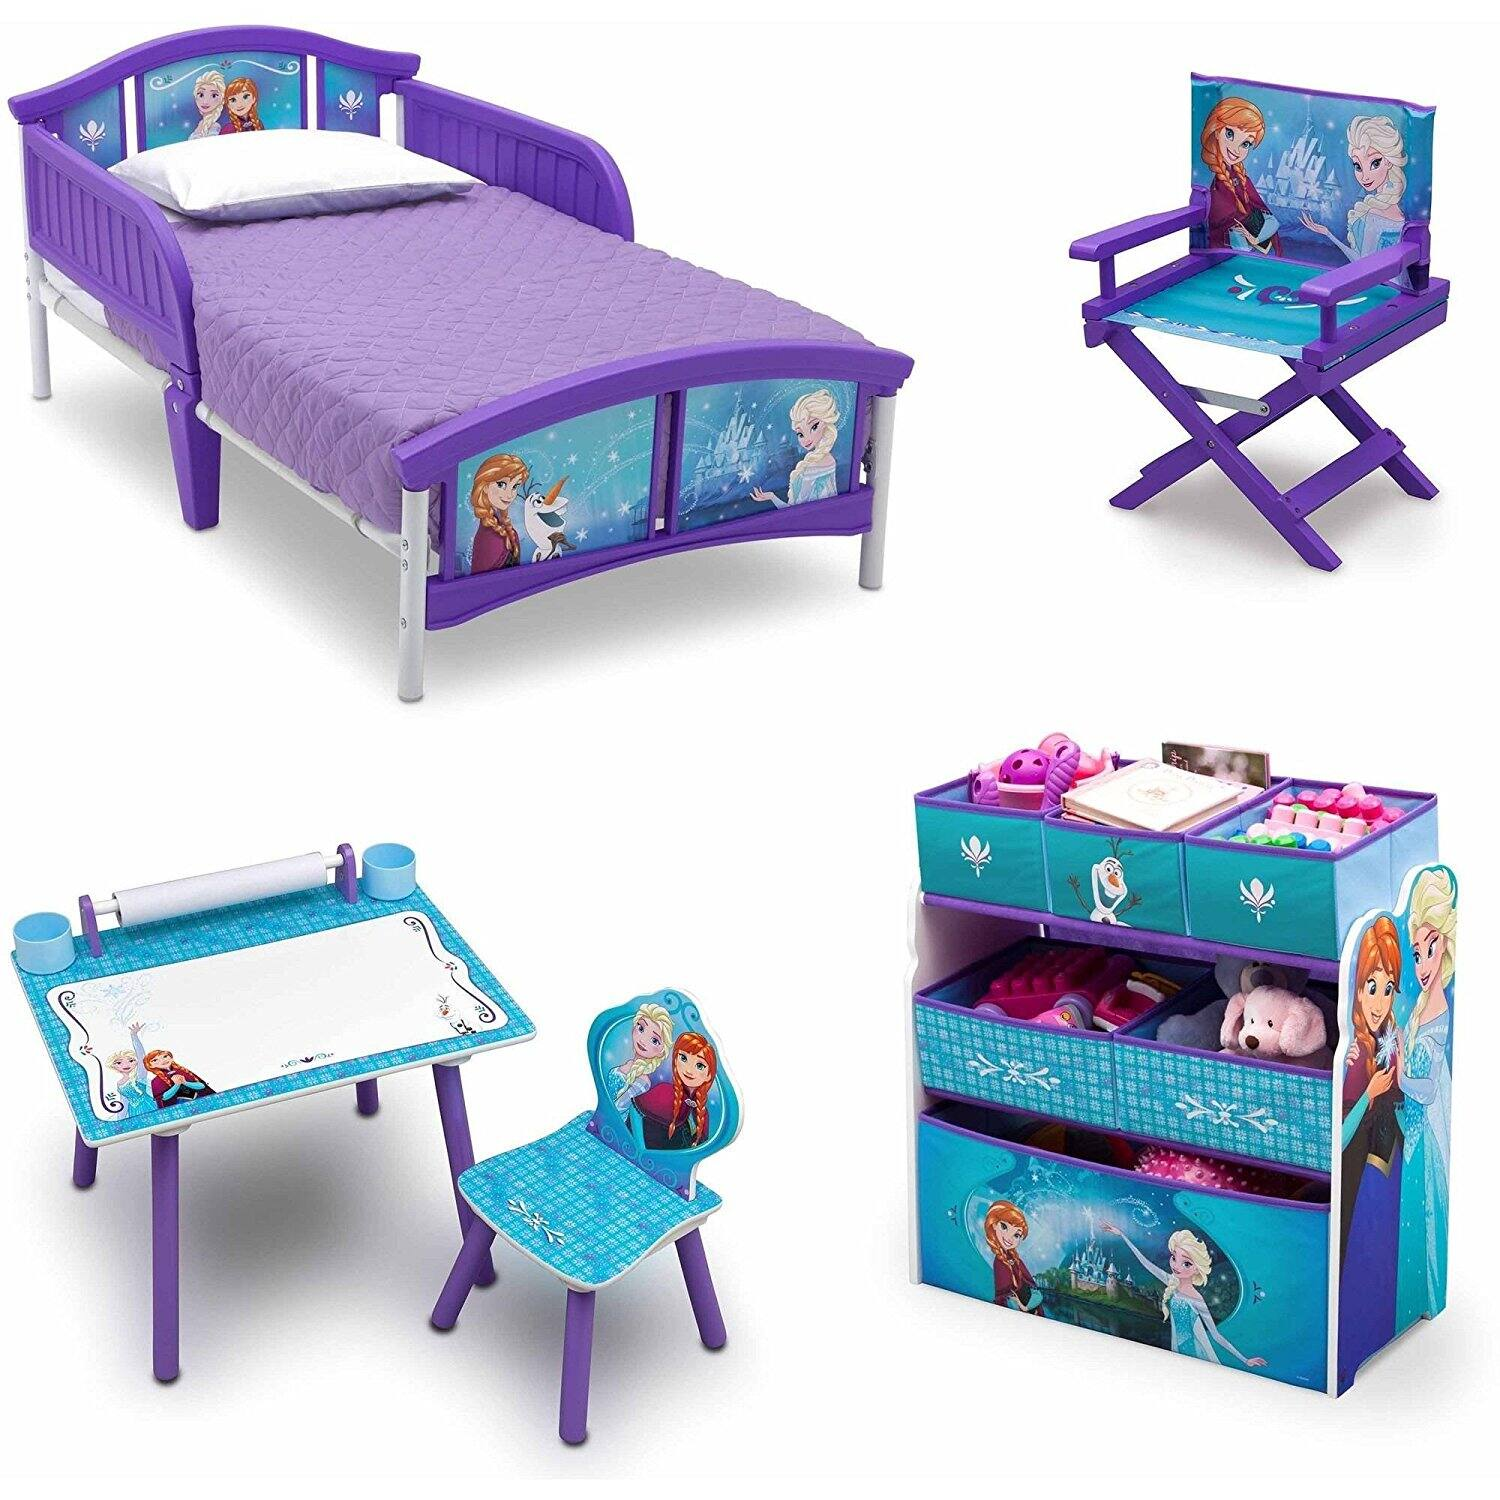 Disney Frozen or Finding Dory Room-in-a-Box with Bonus Chair $75 Each + Free Shipping